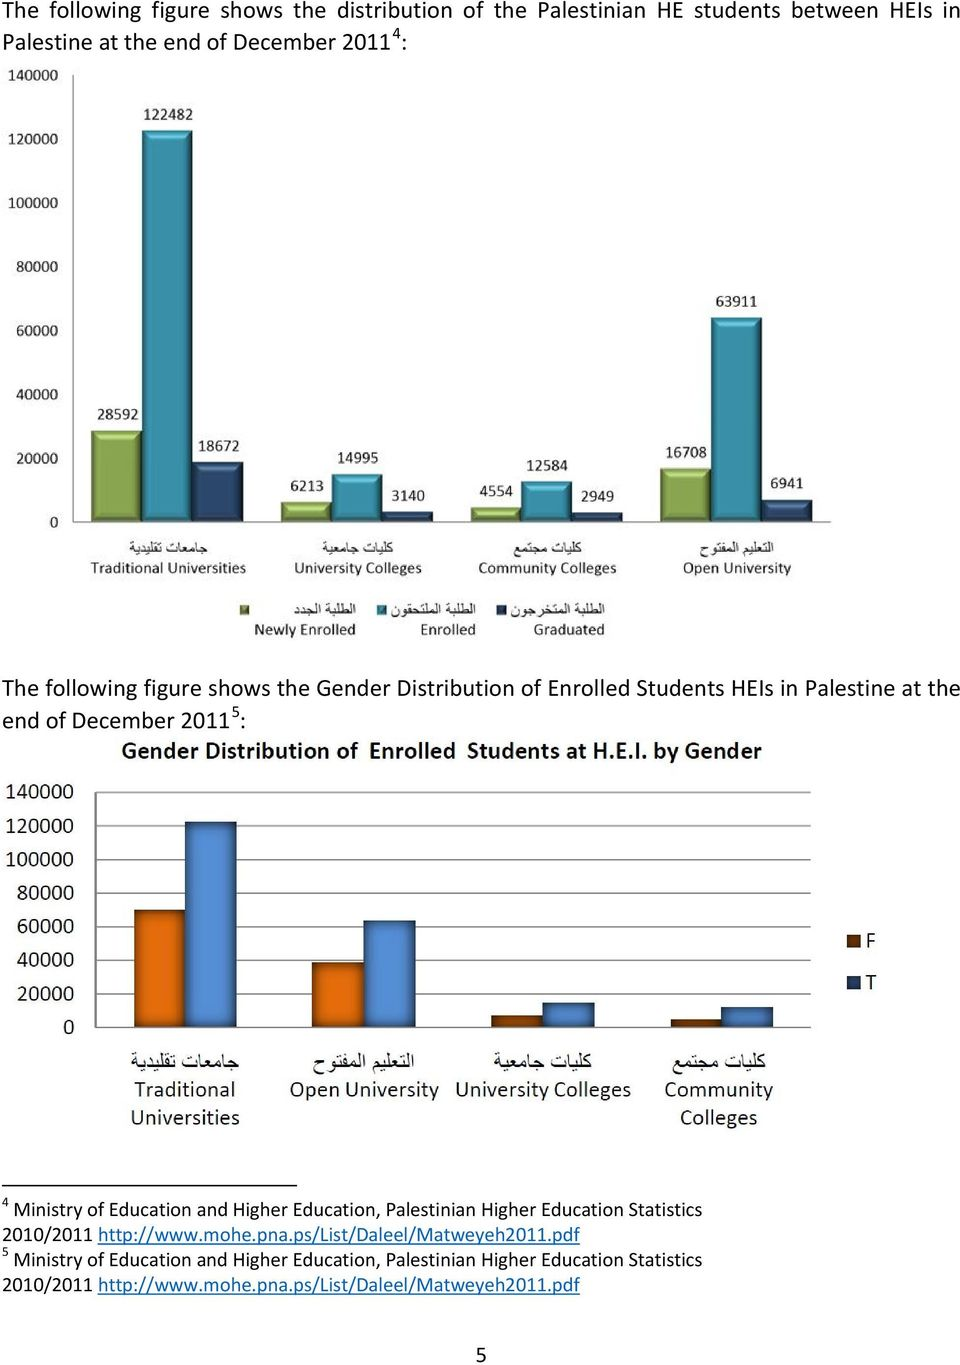 Education and Higher Education, Palestinian Higher Education Statistics 2010/2011 http://www.mohe.pna.ps/list/daleel/matweyeh2011.